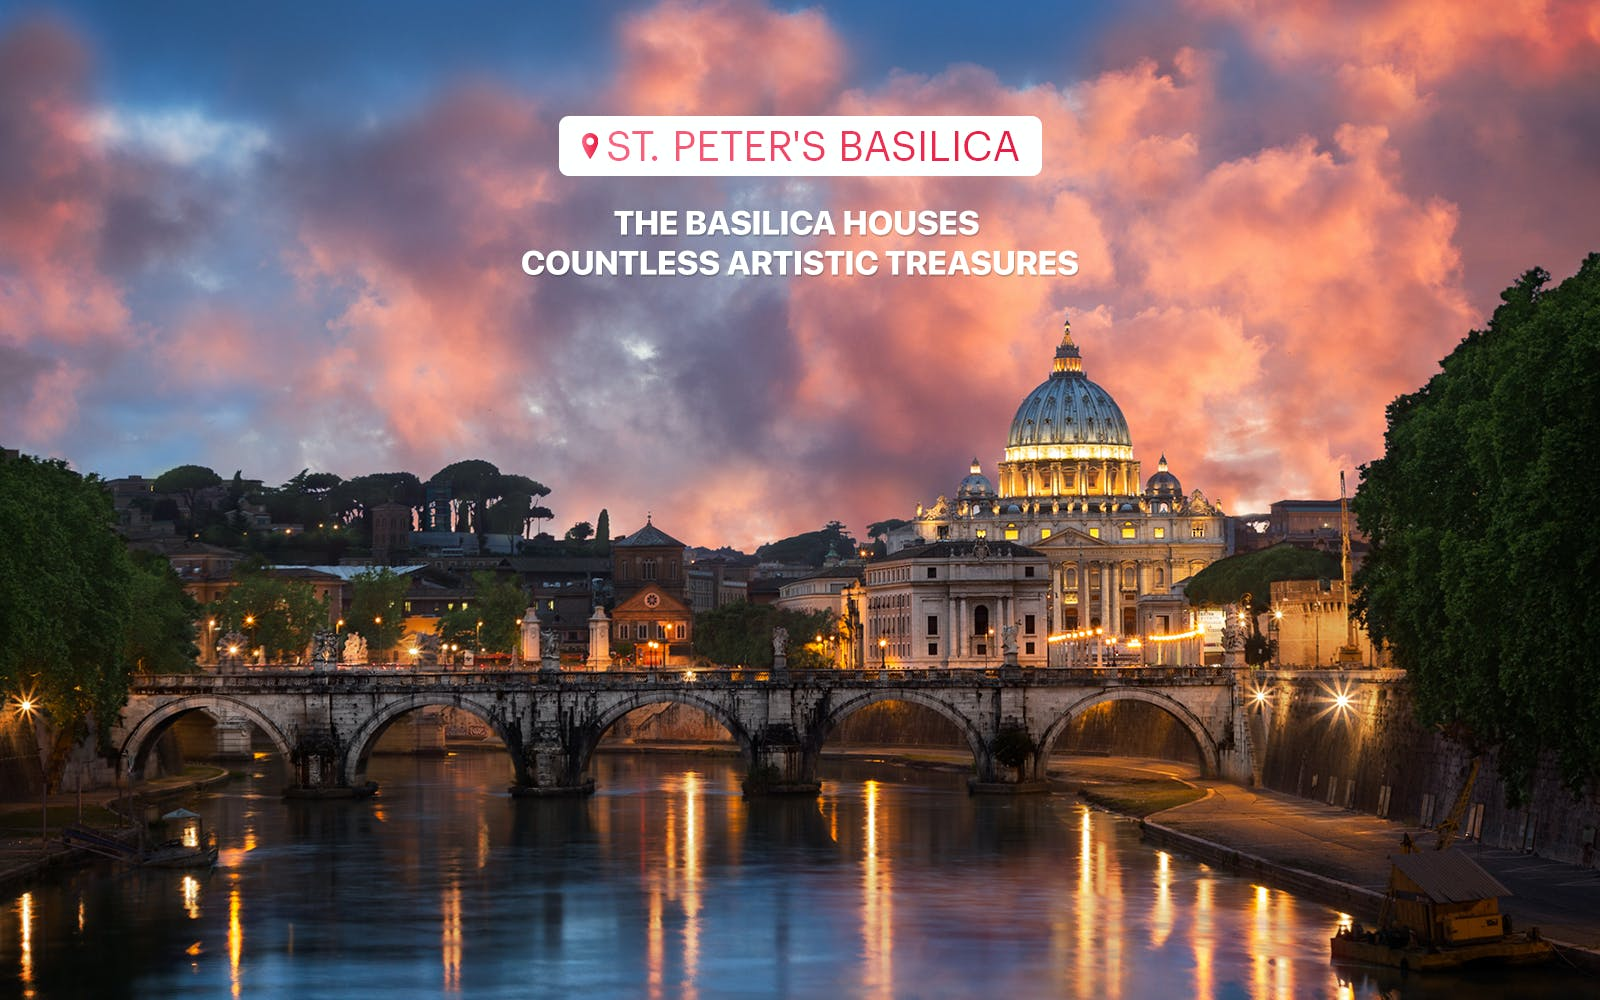 guided tour of the vatican museums, sistine chapel and st. peter's basilica-11